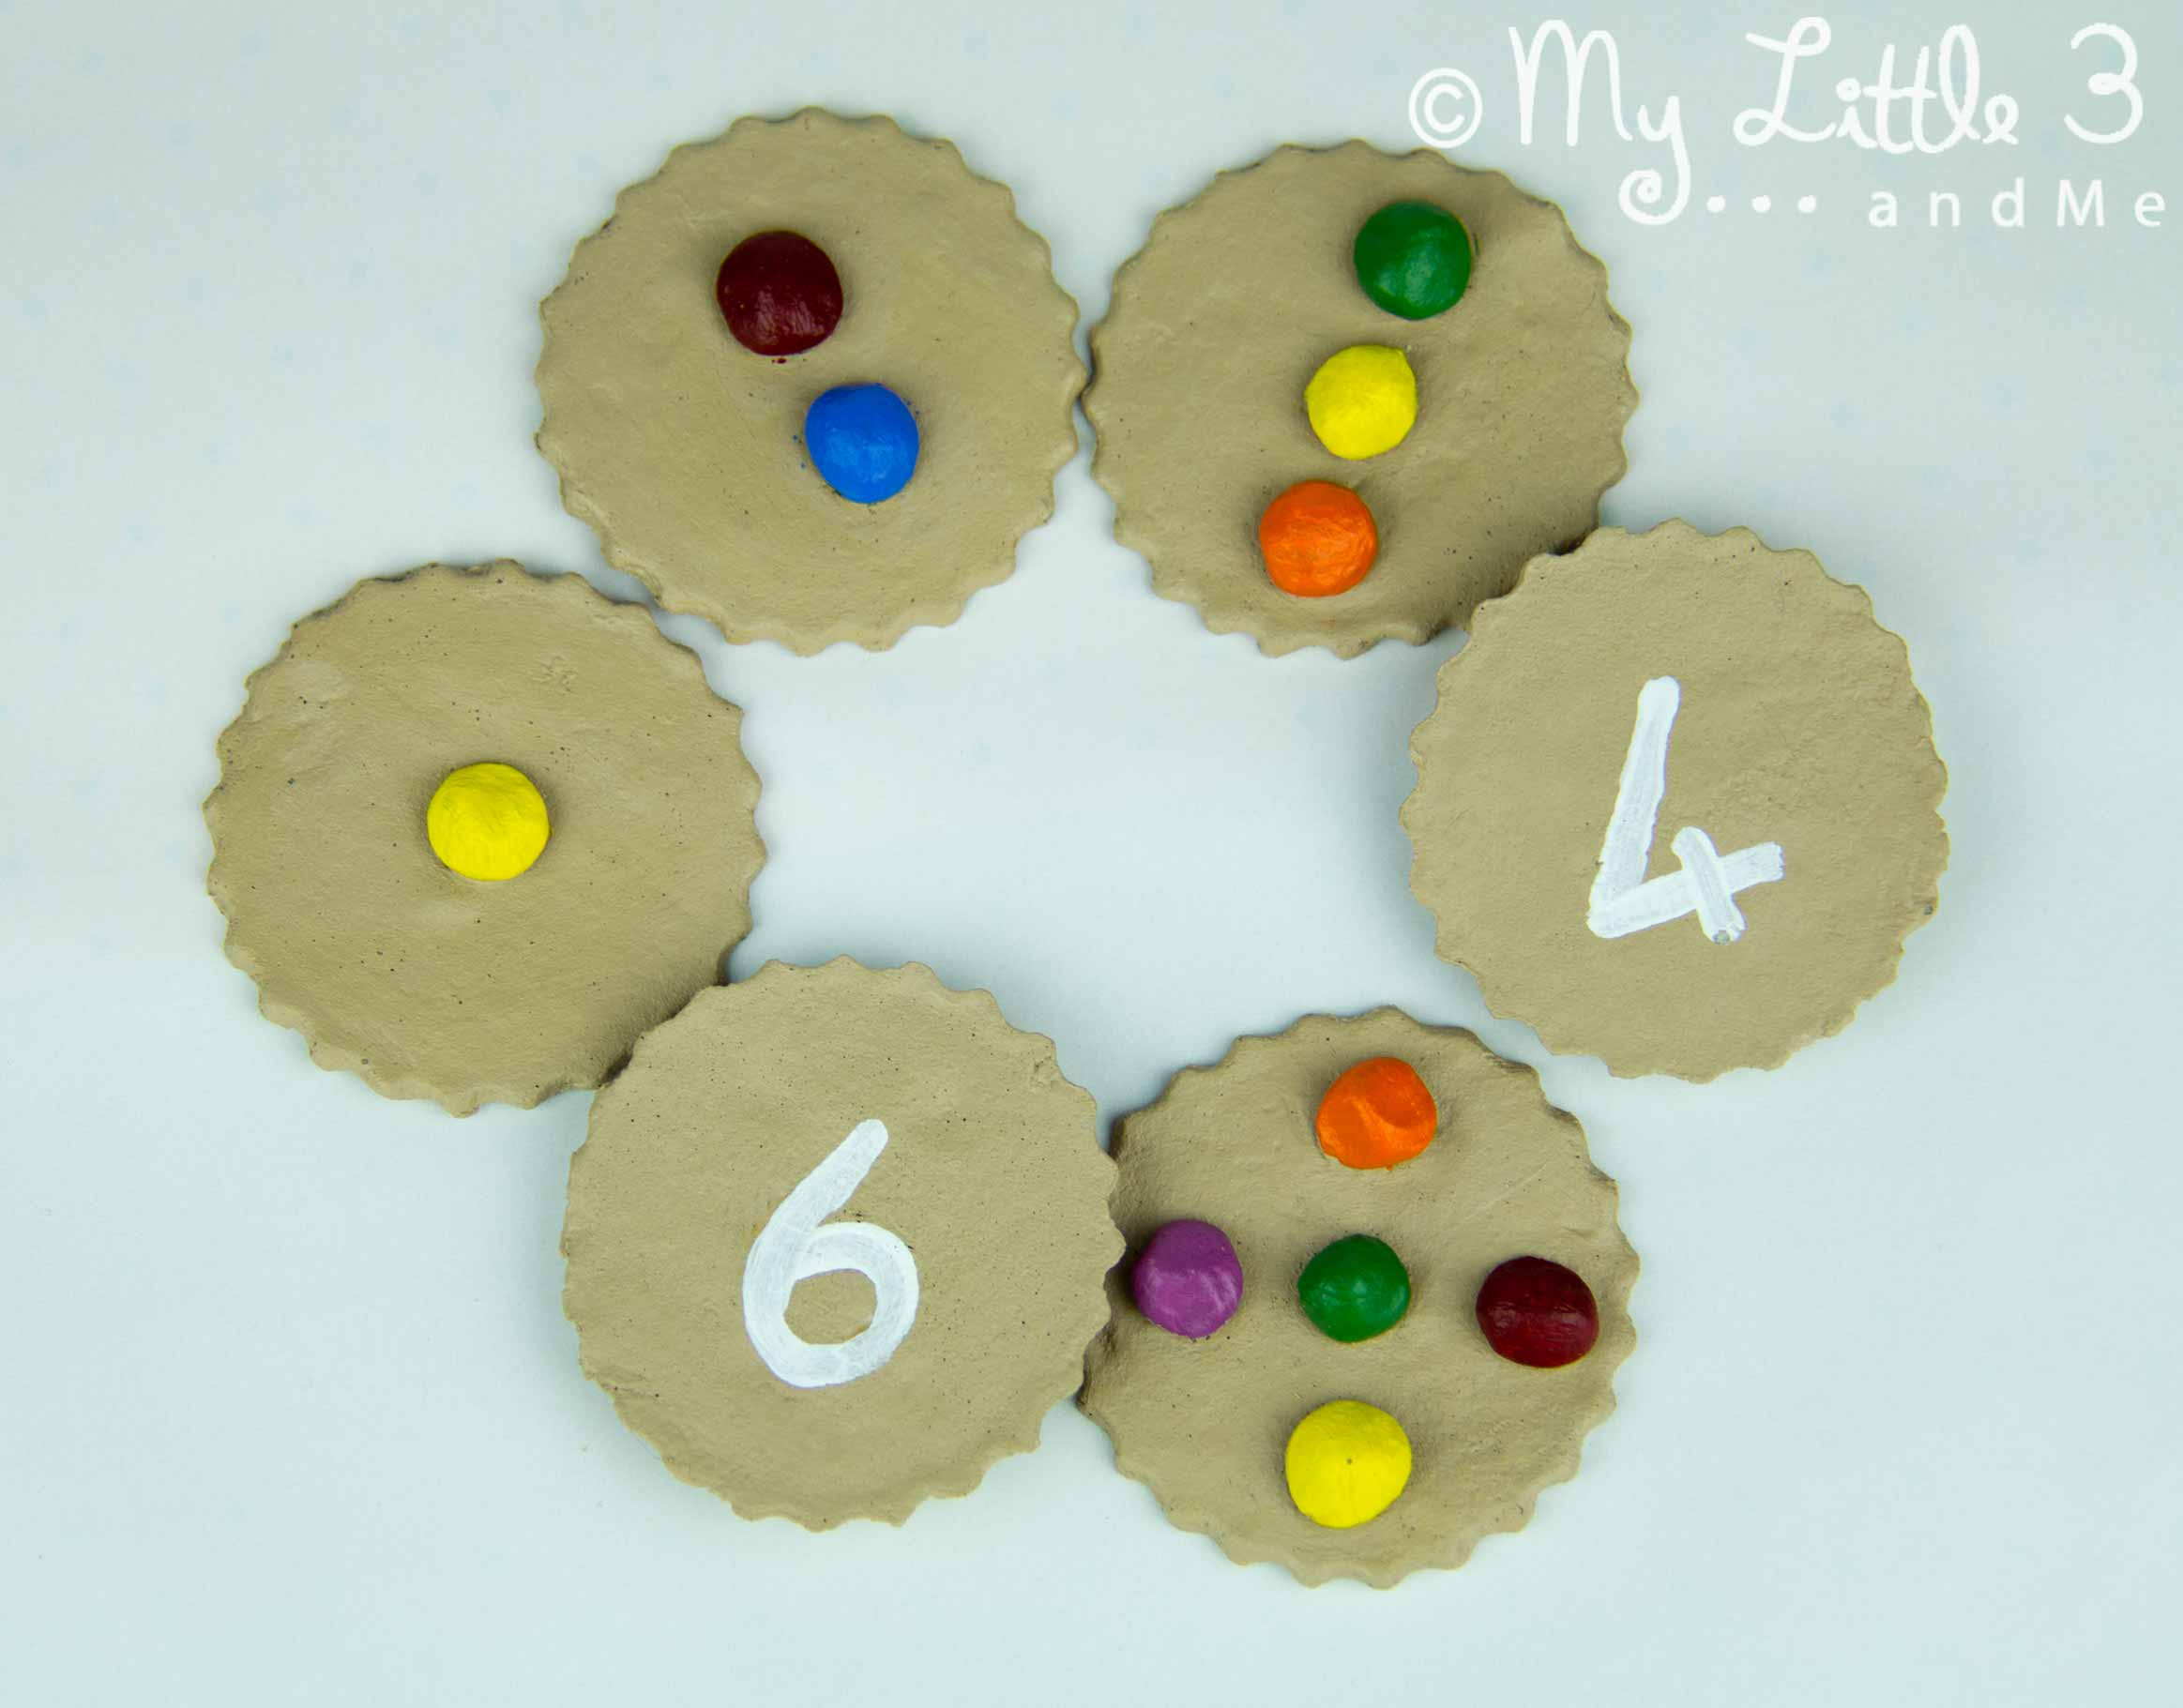 Counting Cookies (Simple Salt Dough Recipe) - My Little 3 and Me